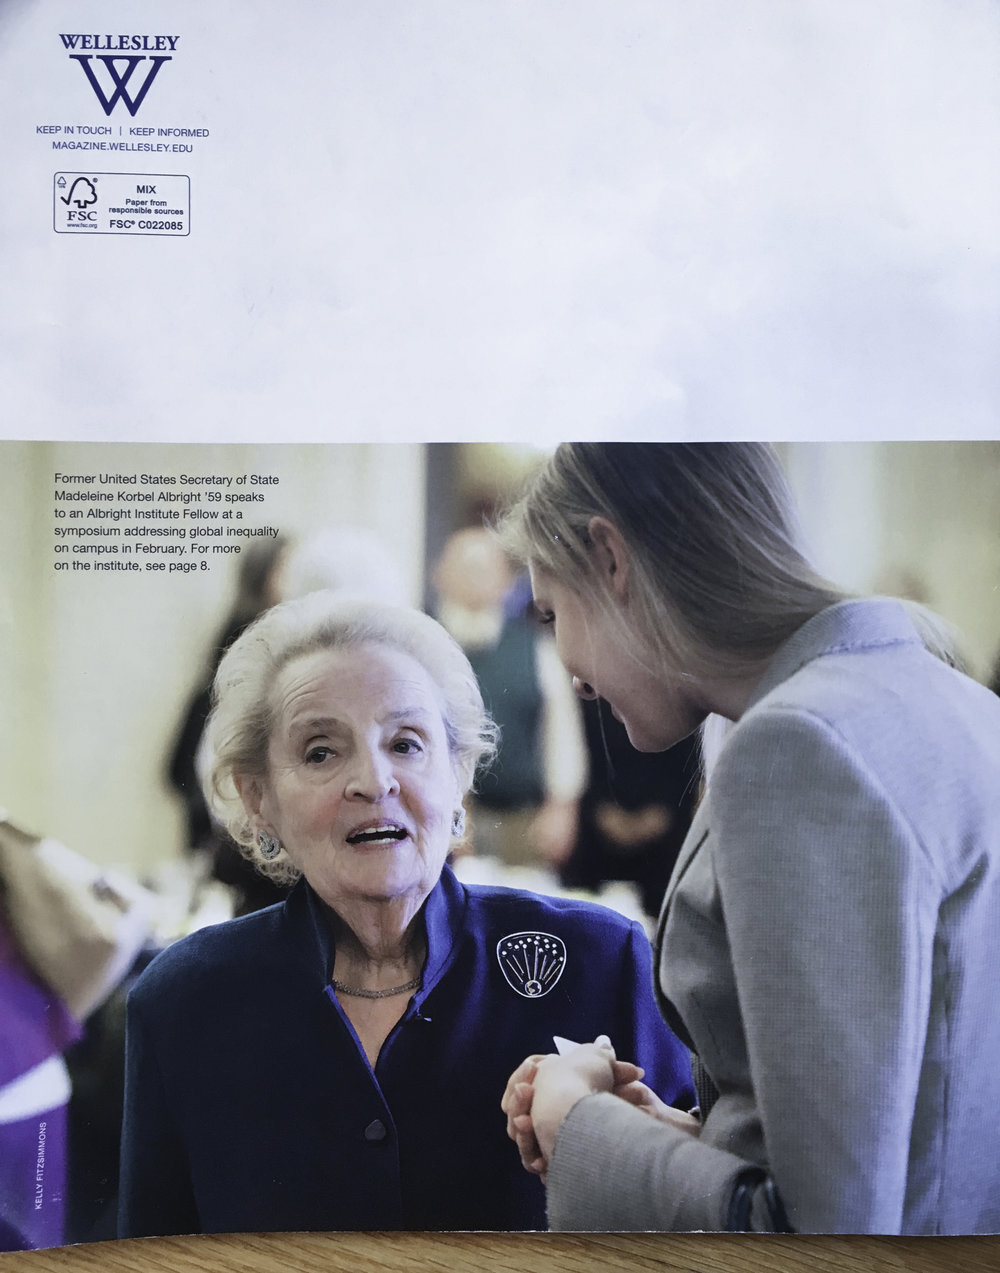 Former Secretary of State Madeleine Albright chats with a student at the annual Albright Institute at Wellesley College.